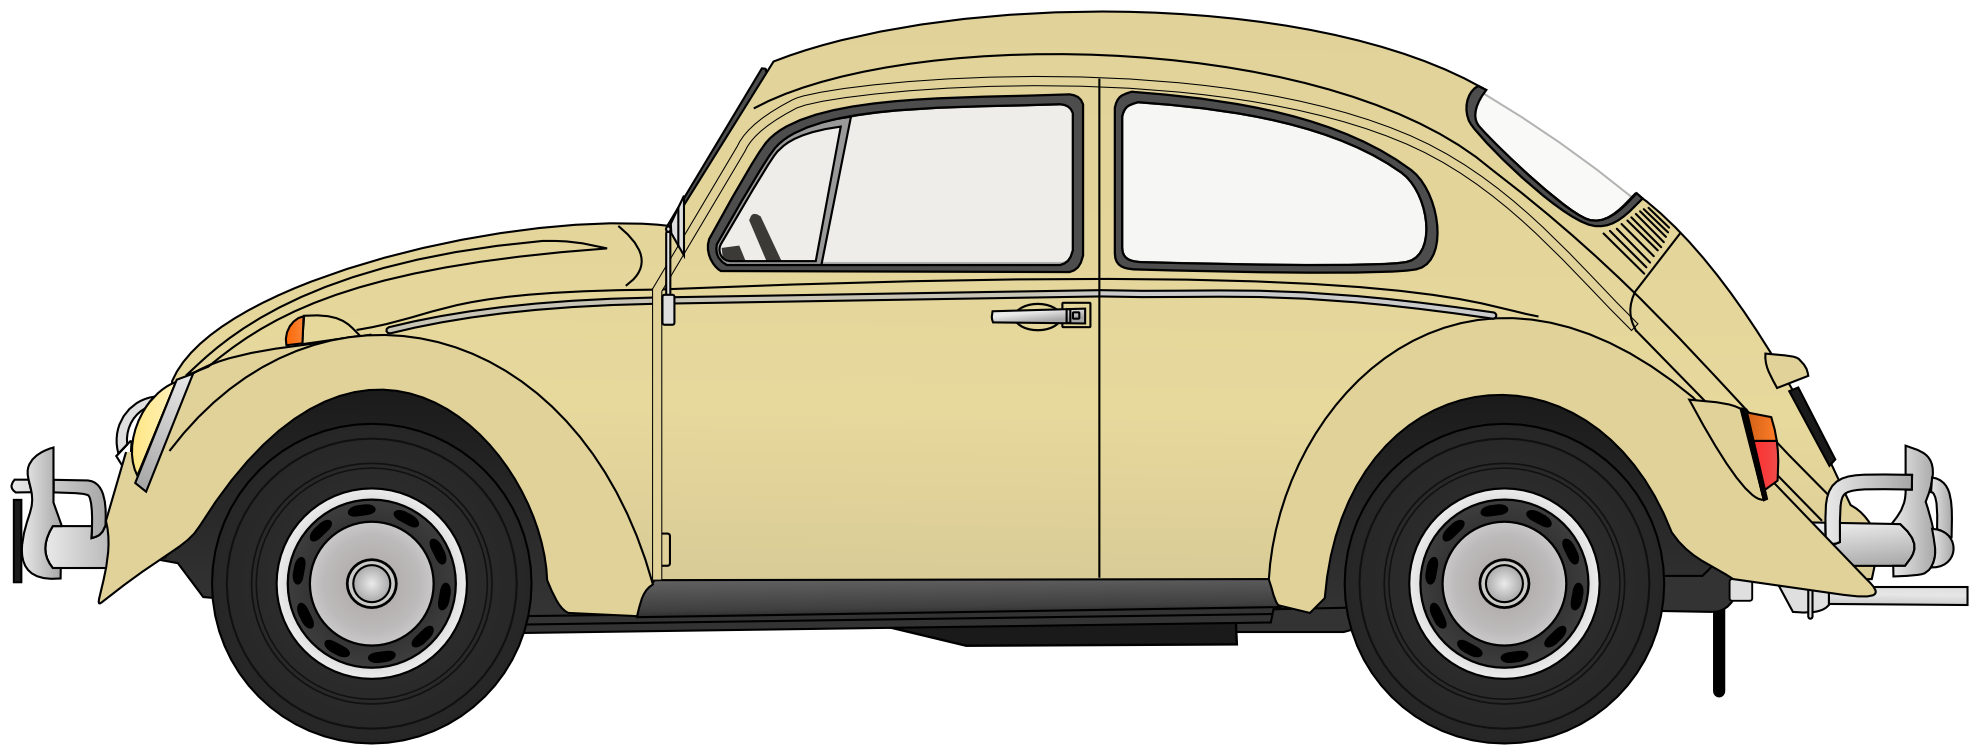 Clipart cars yellow. Free volkswagen beetle cliparts